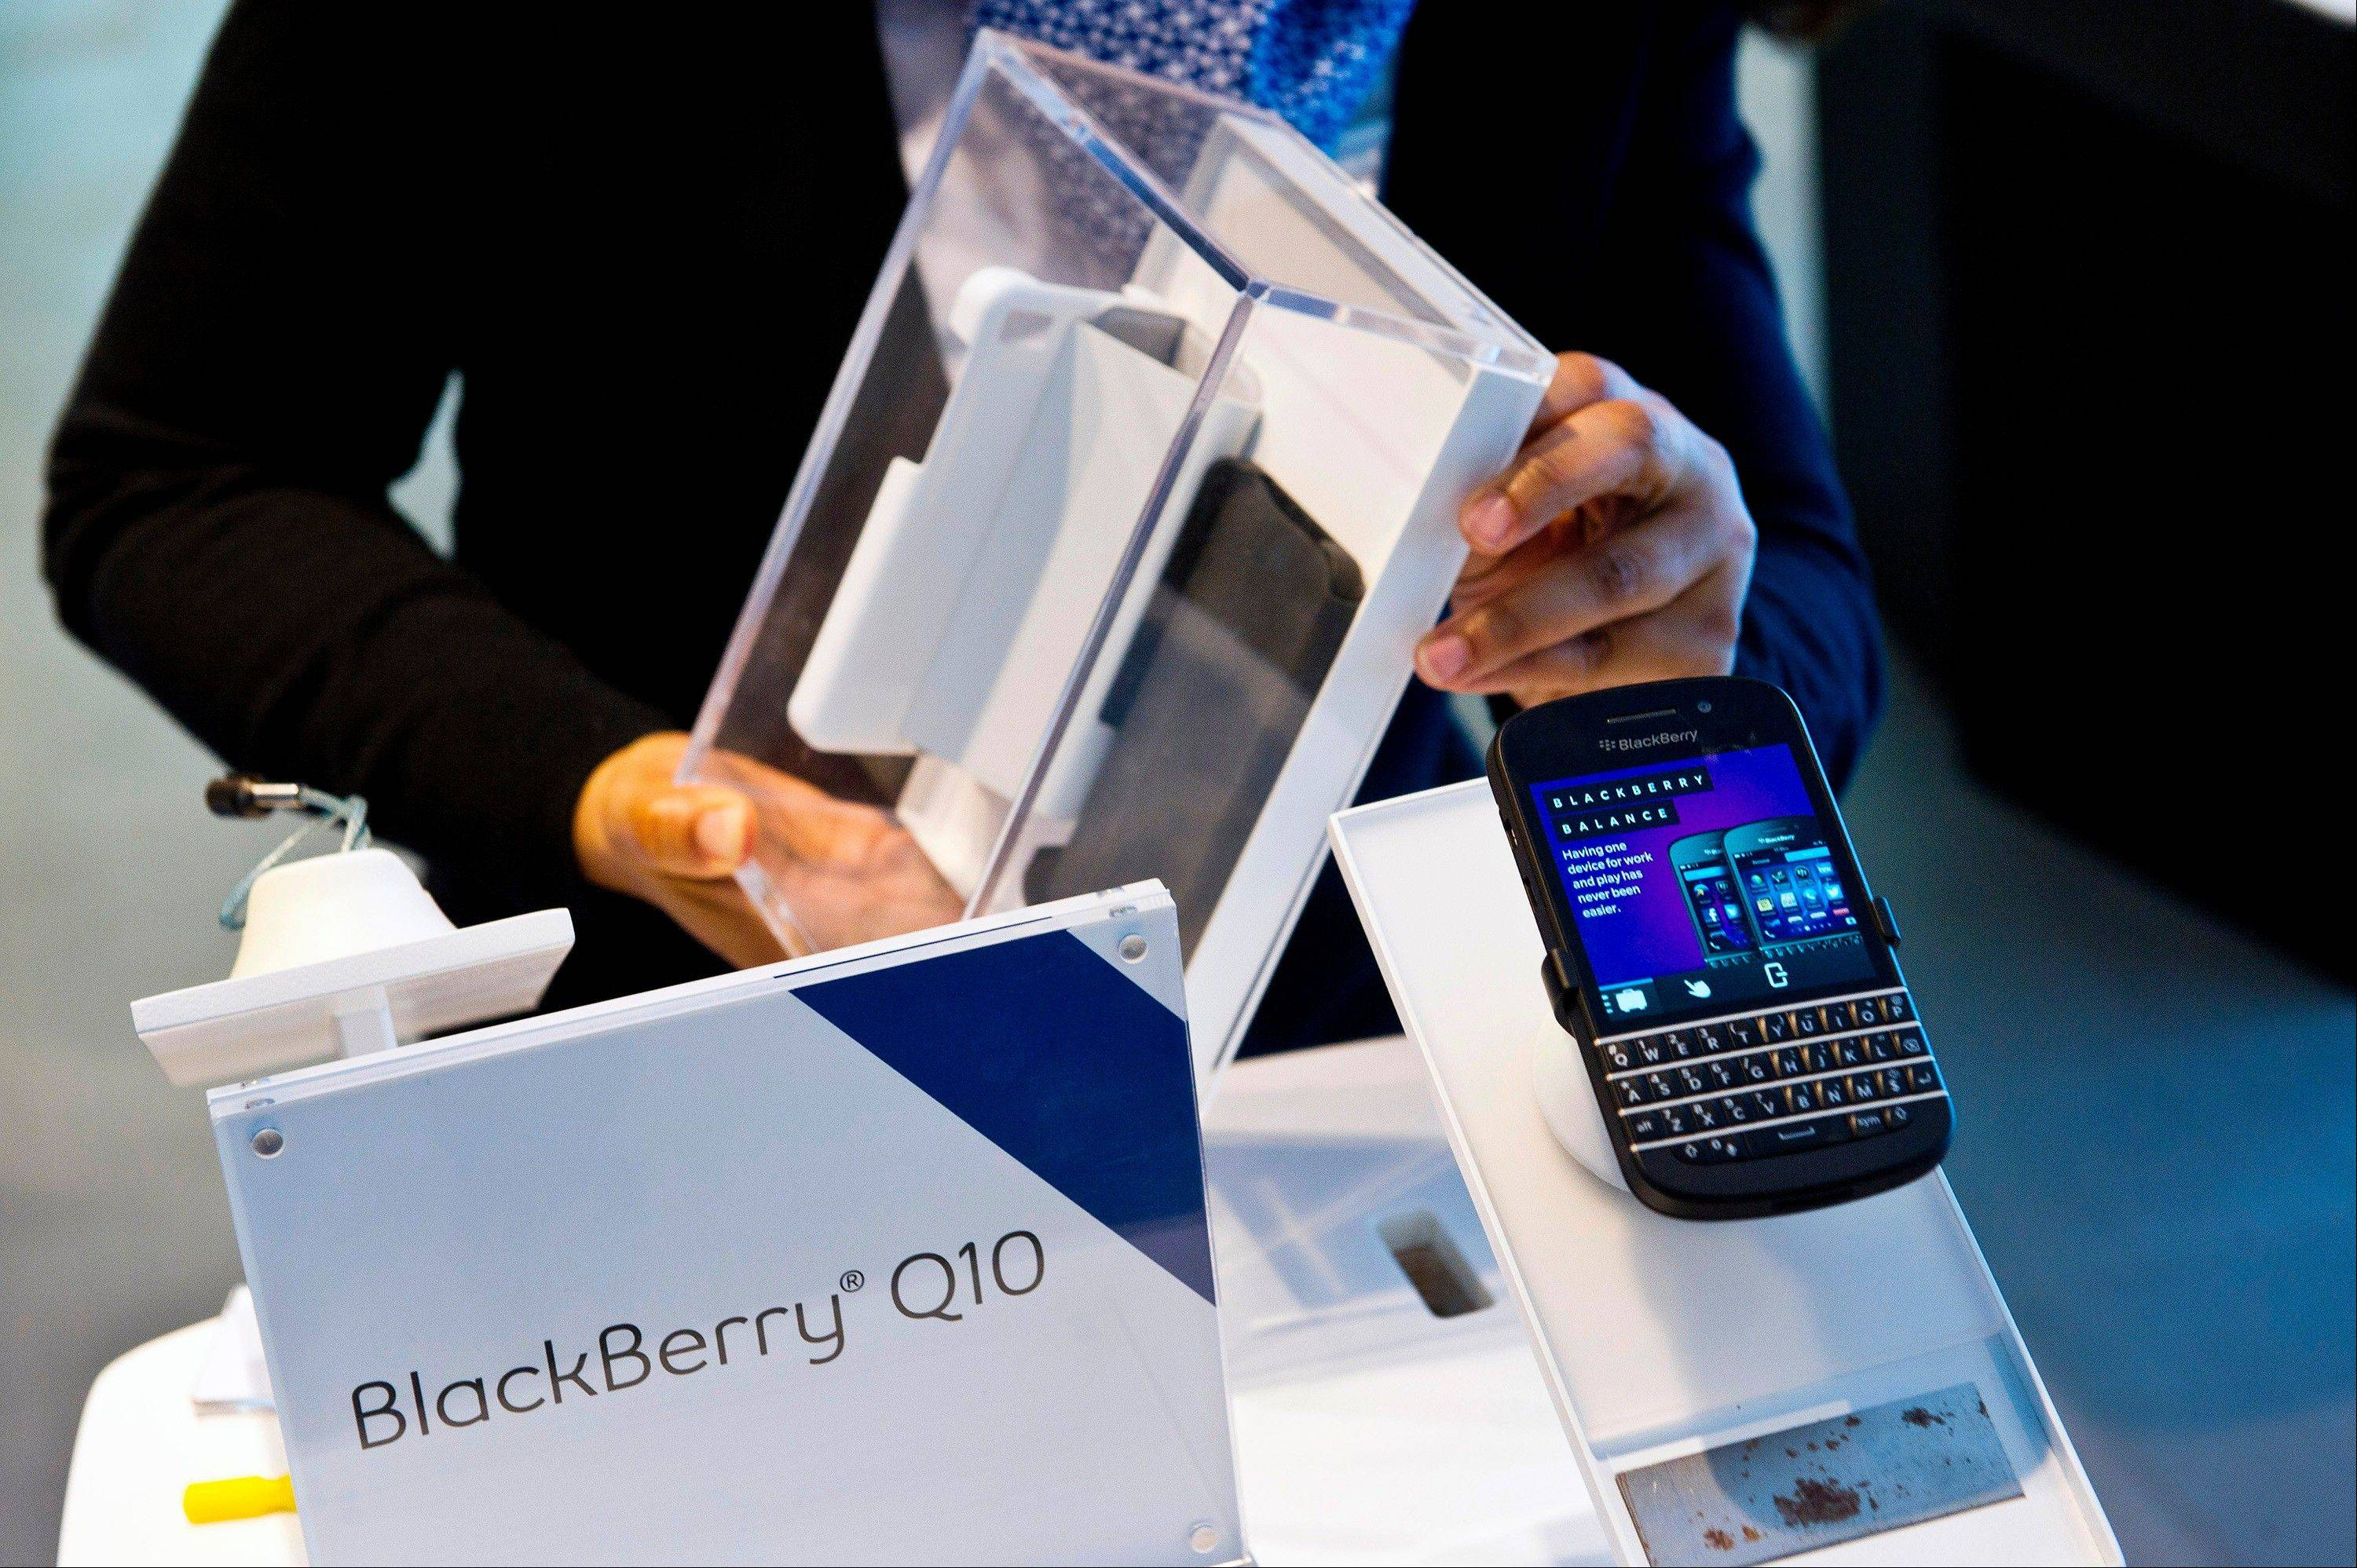 BlackBerry, the Canadian smartphone maker, climbed to its highest level in more than a month after Chief Executive Officer Thorsten Heins said he sees sales of its new Q10 device to be in the �tens of millions.�